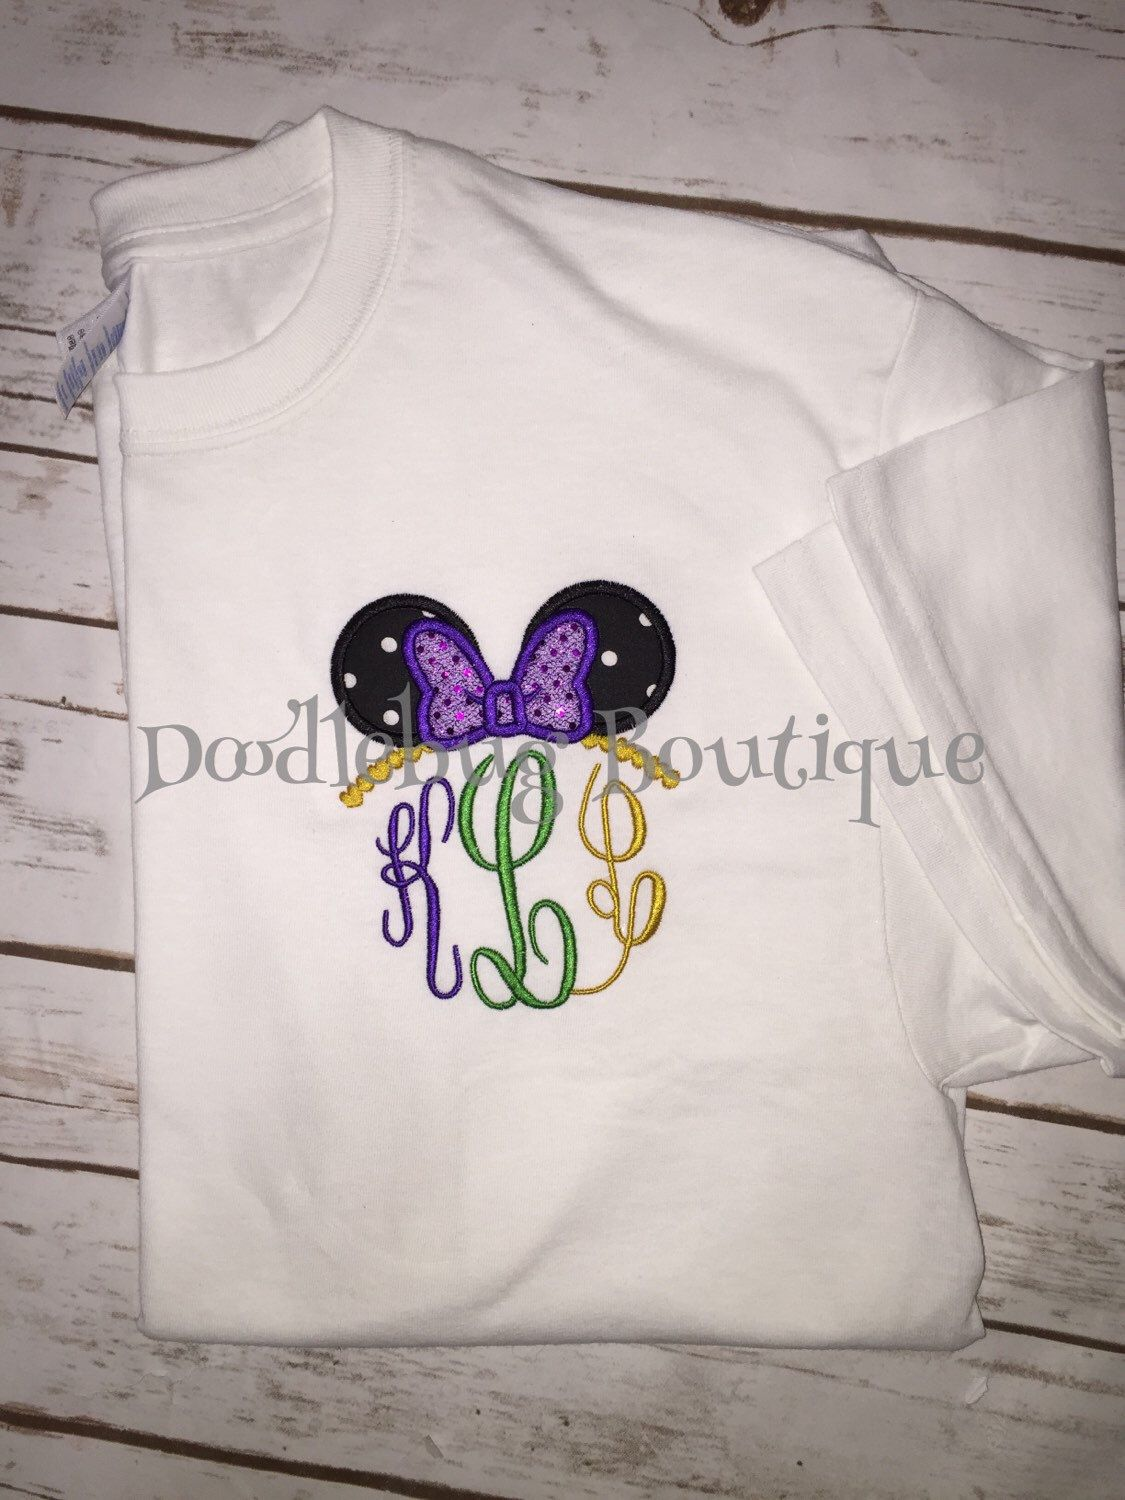 30b14bb3 Disney Silhouettes · Mardi Gras Minnie Mouse ear shirt by  DoodlebugBoutique4u on Etsy https://www.